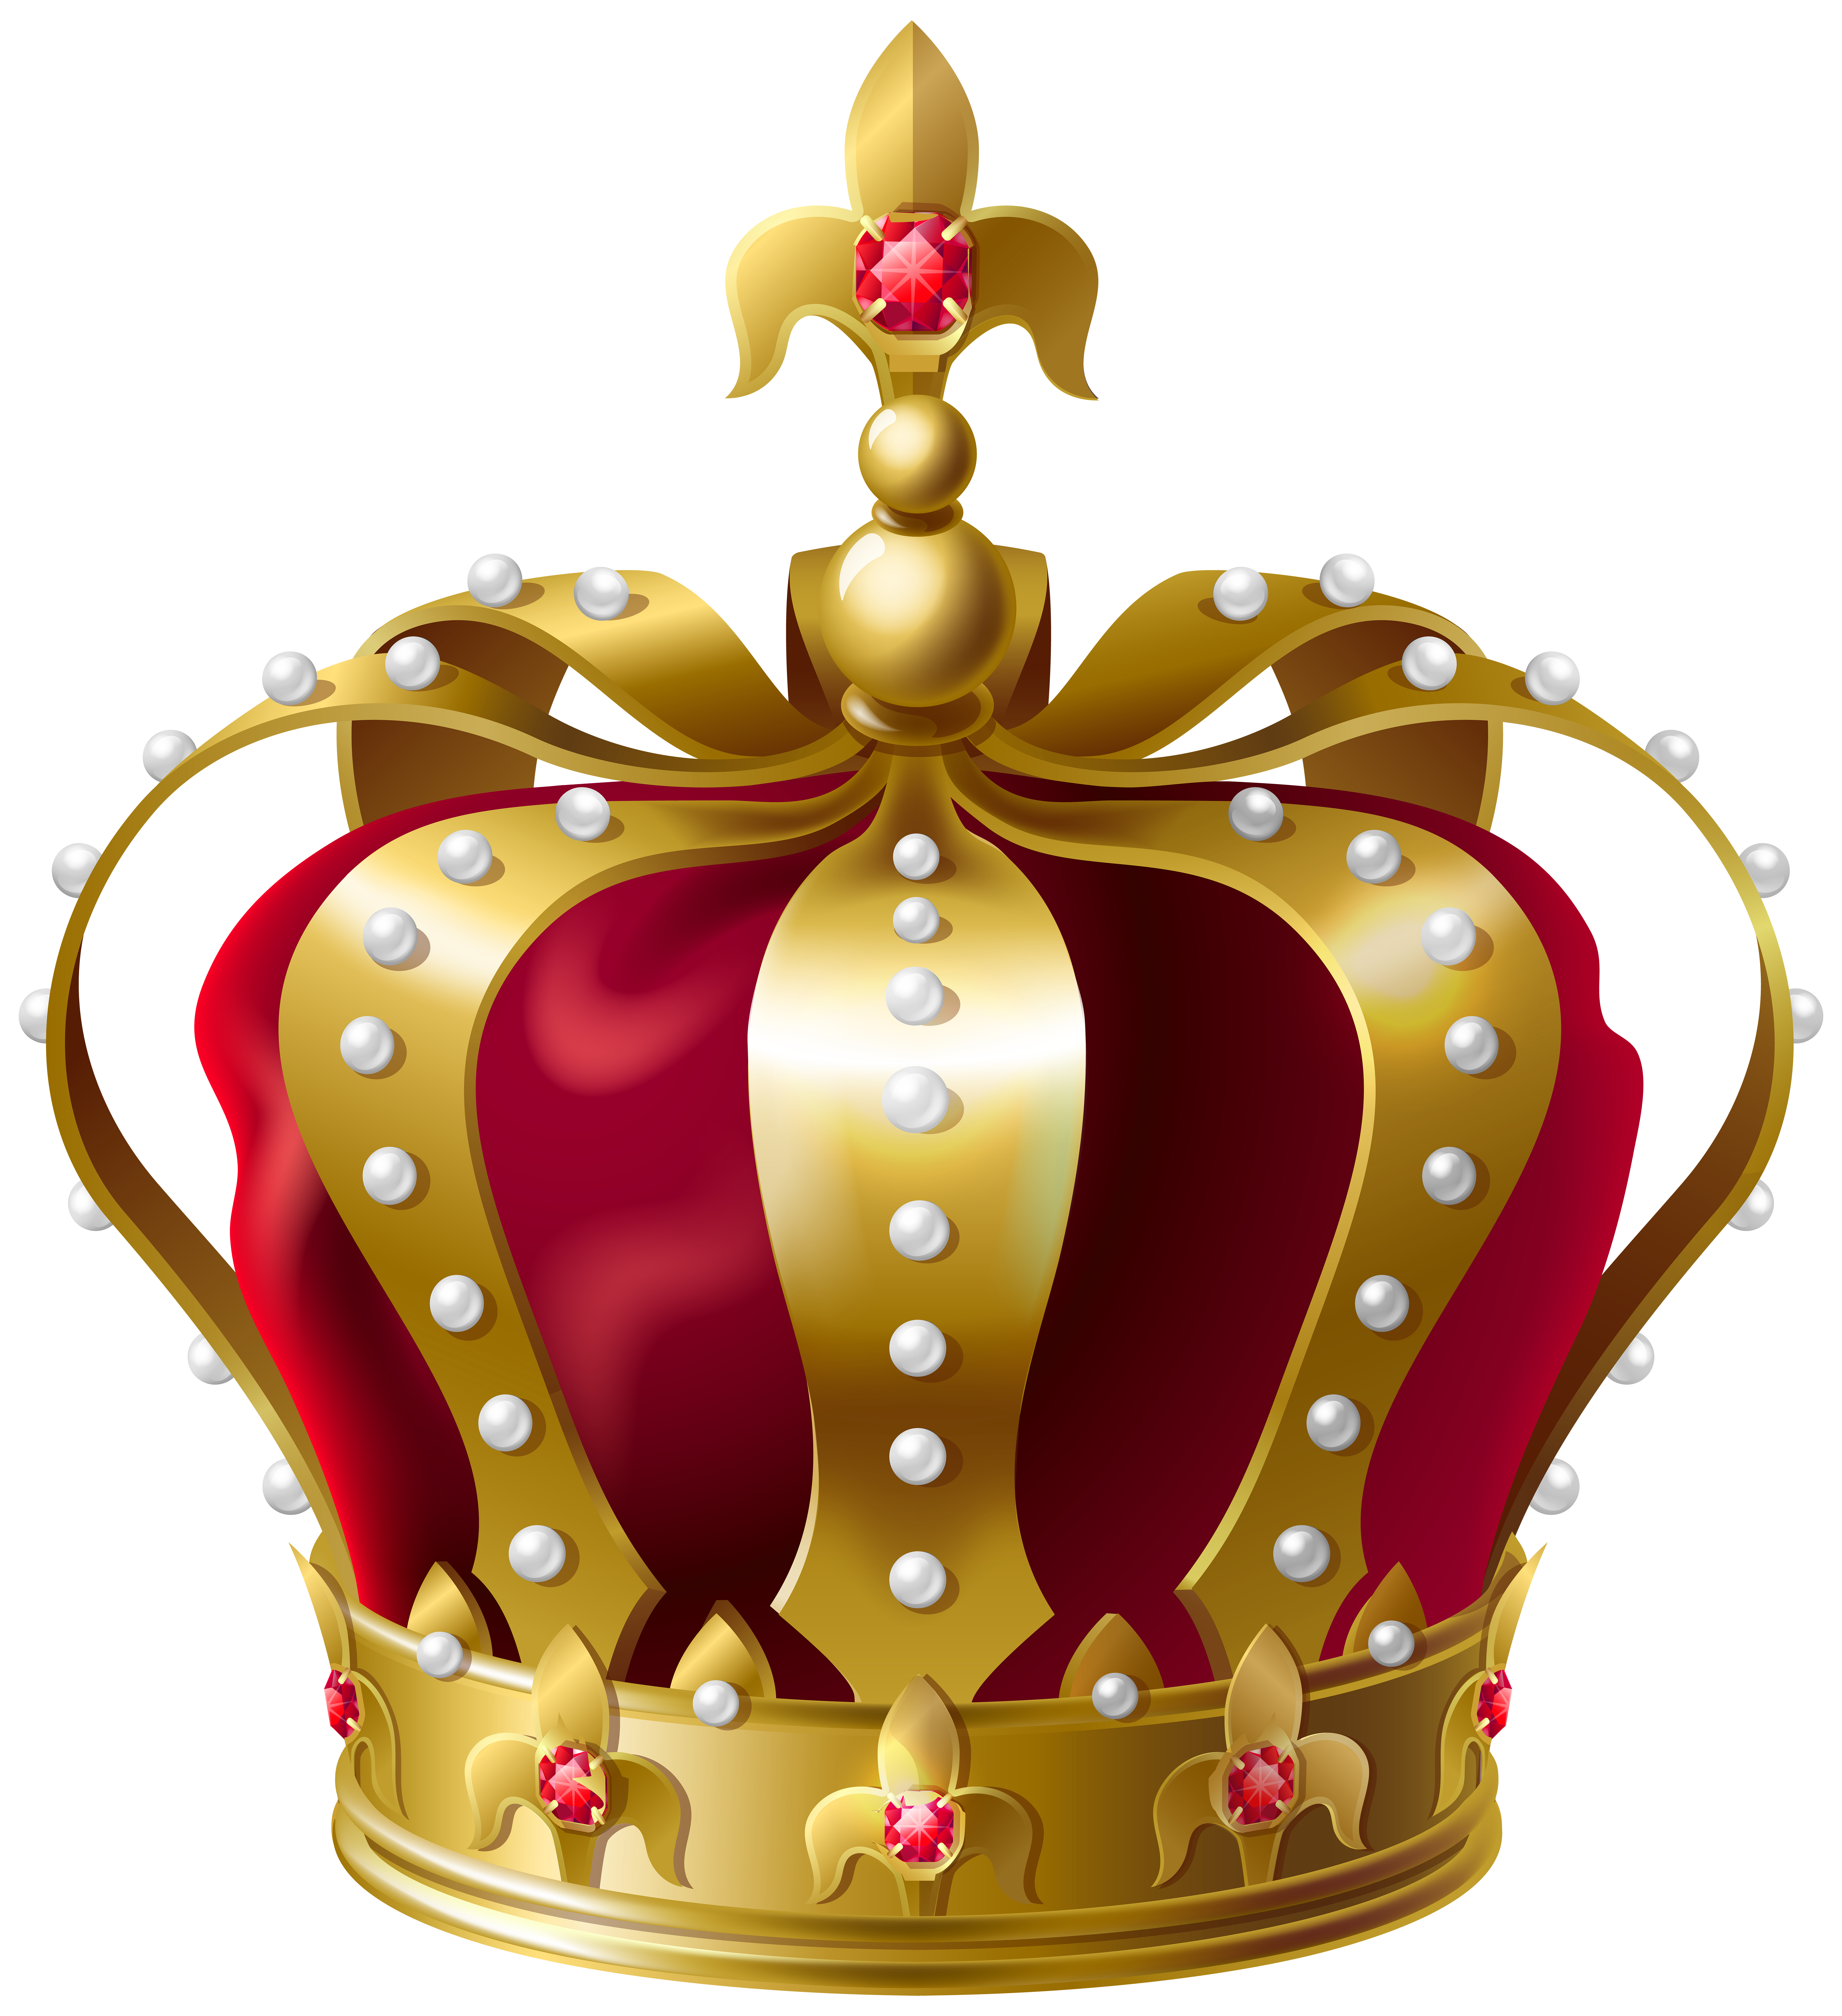 Happy birthday clipart for a crown for a king clipart svg freeuse download King Crown Transparent PNG Clip Art Image | Gallery Yopriceville ... svg freeuse download